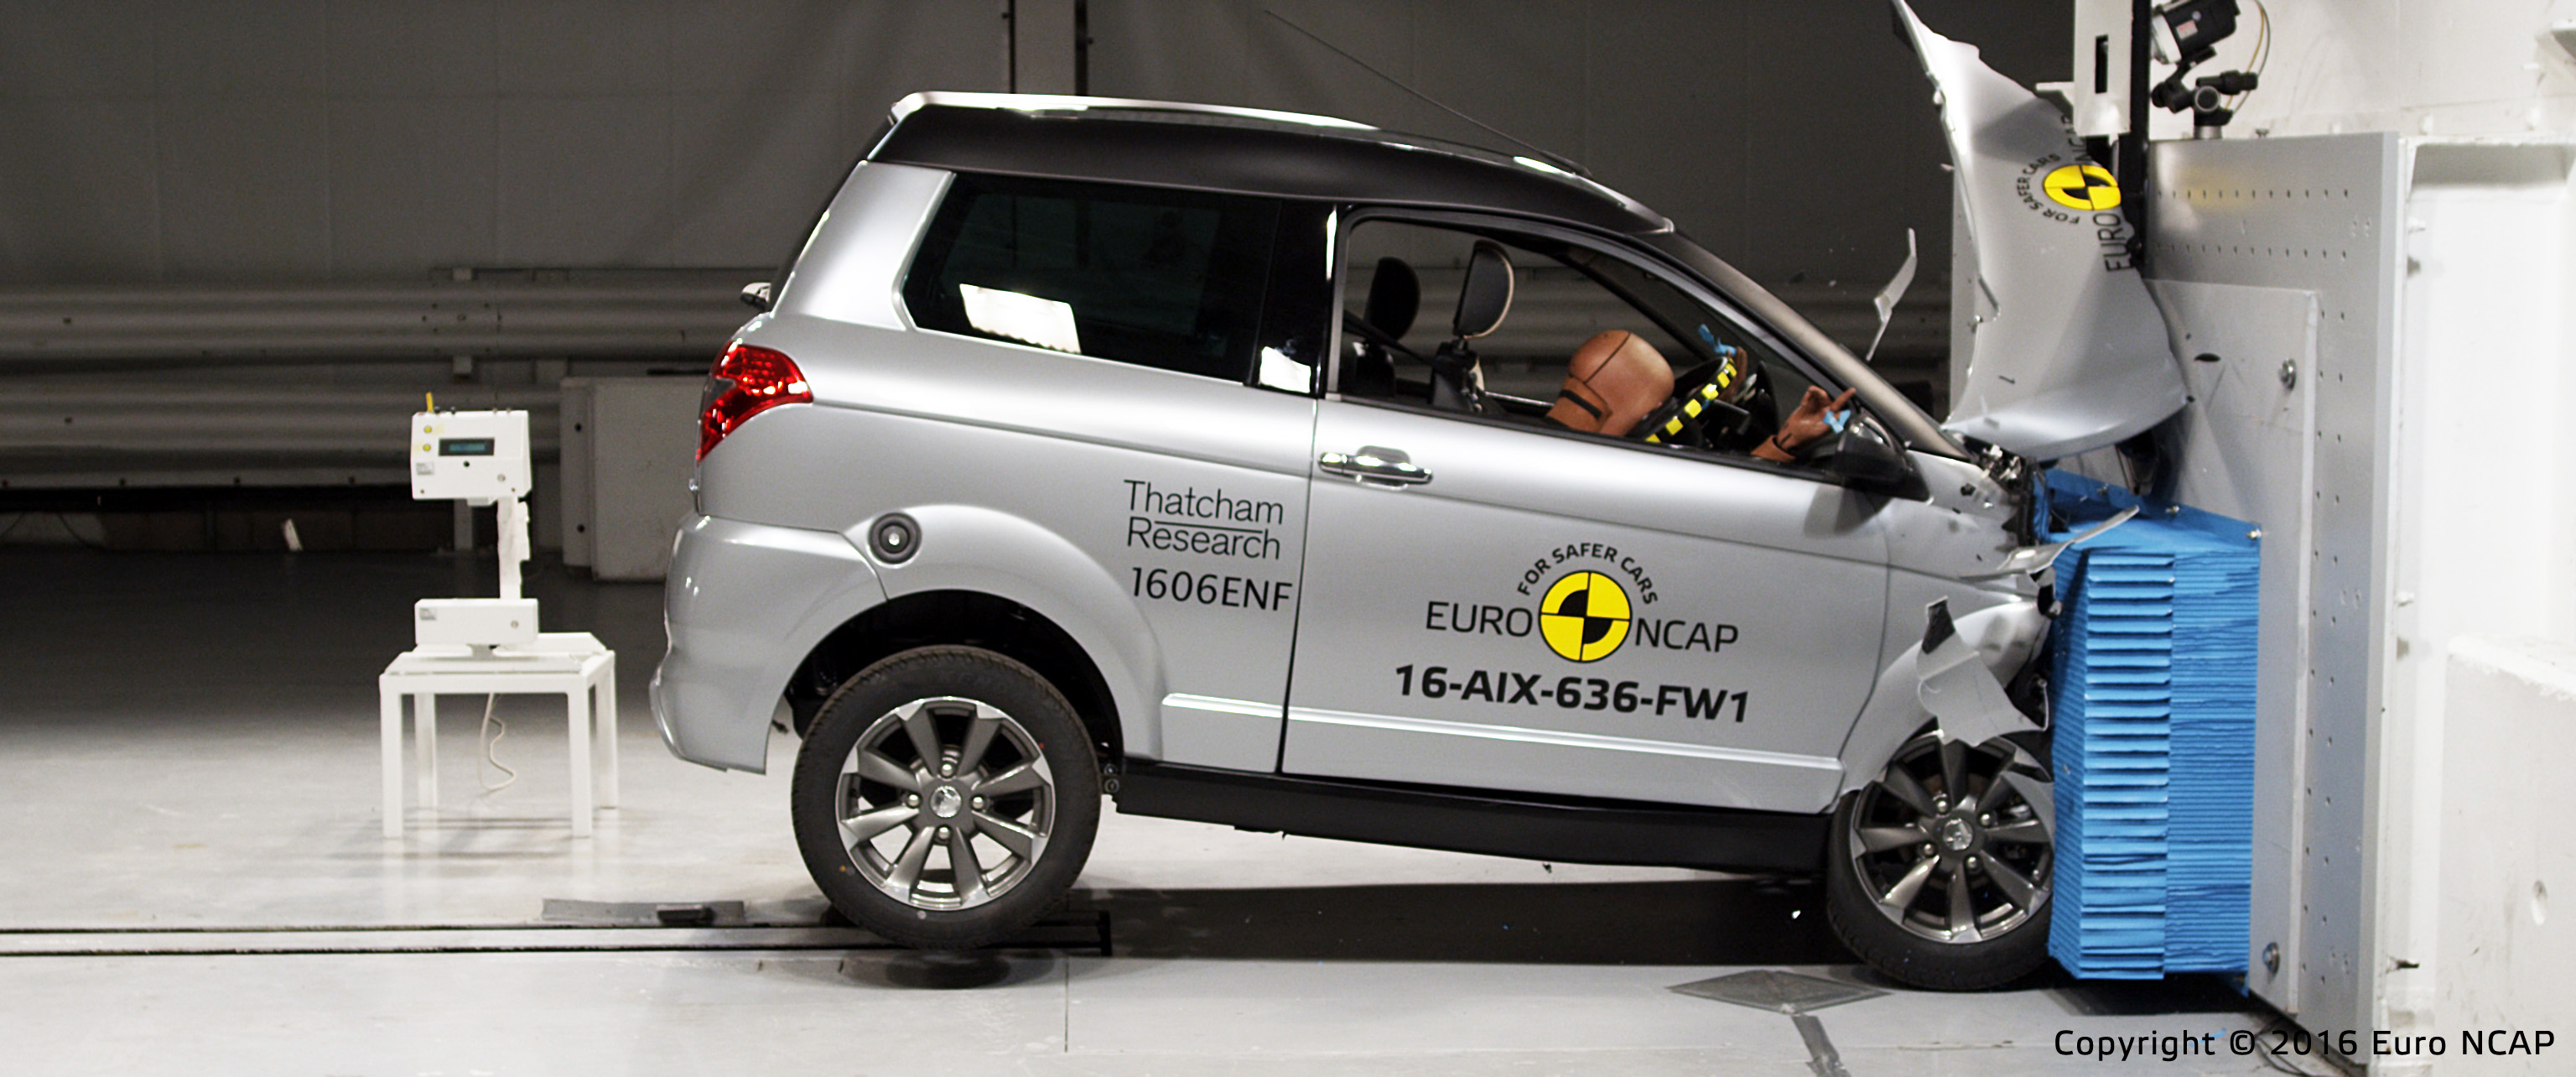 Euro NCAP frontal impact test of Aixam Crossover GTR